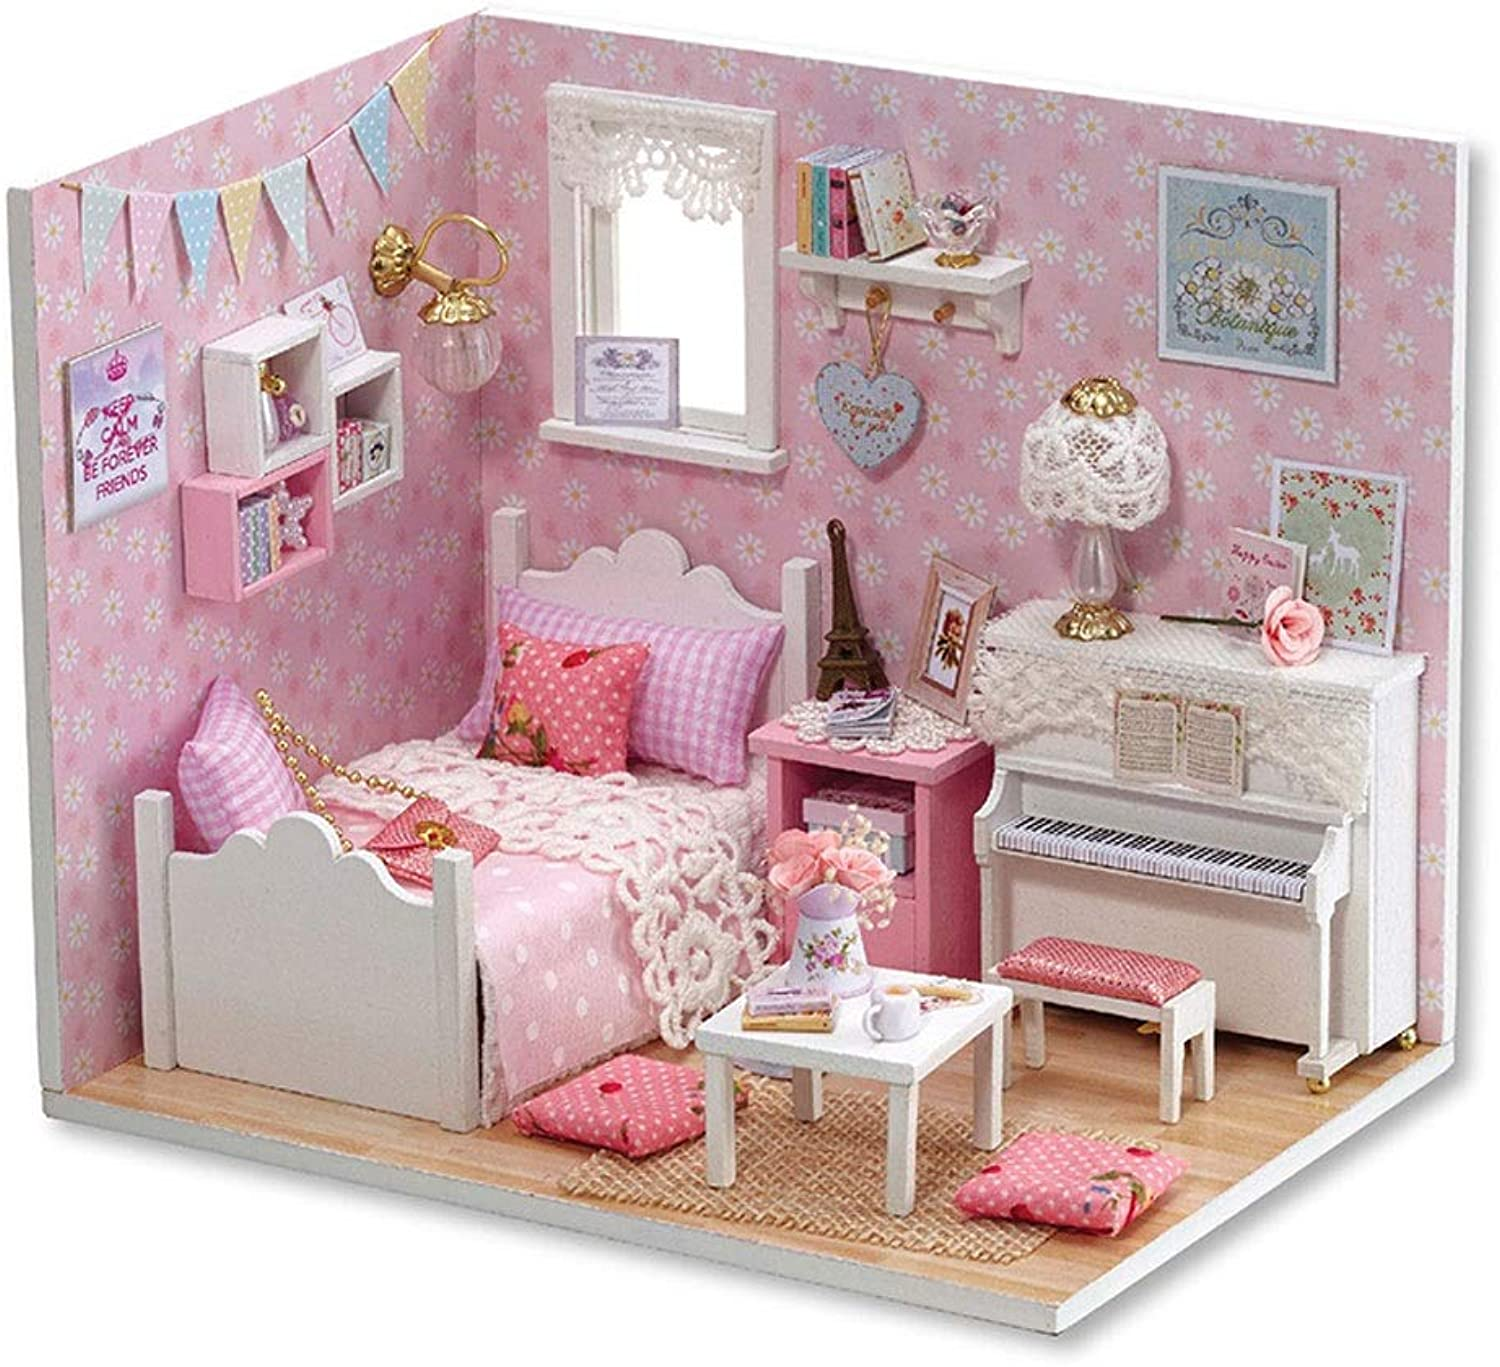 Dollhouse Miniature DIY House Kit, Hand-Assembled Educational Toy Building Model Birthday Gift -Sunshine Princess